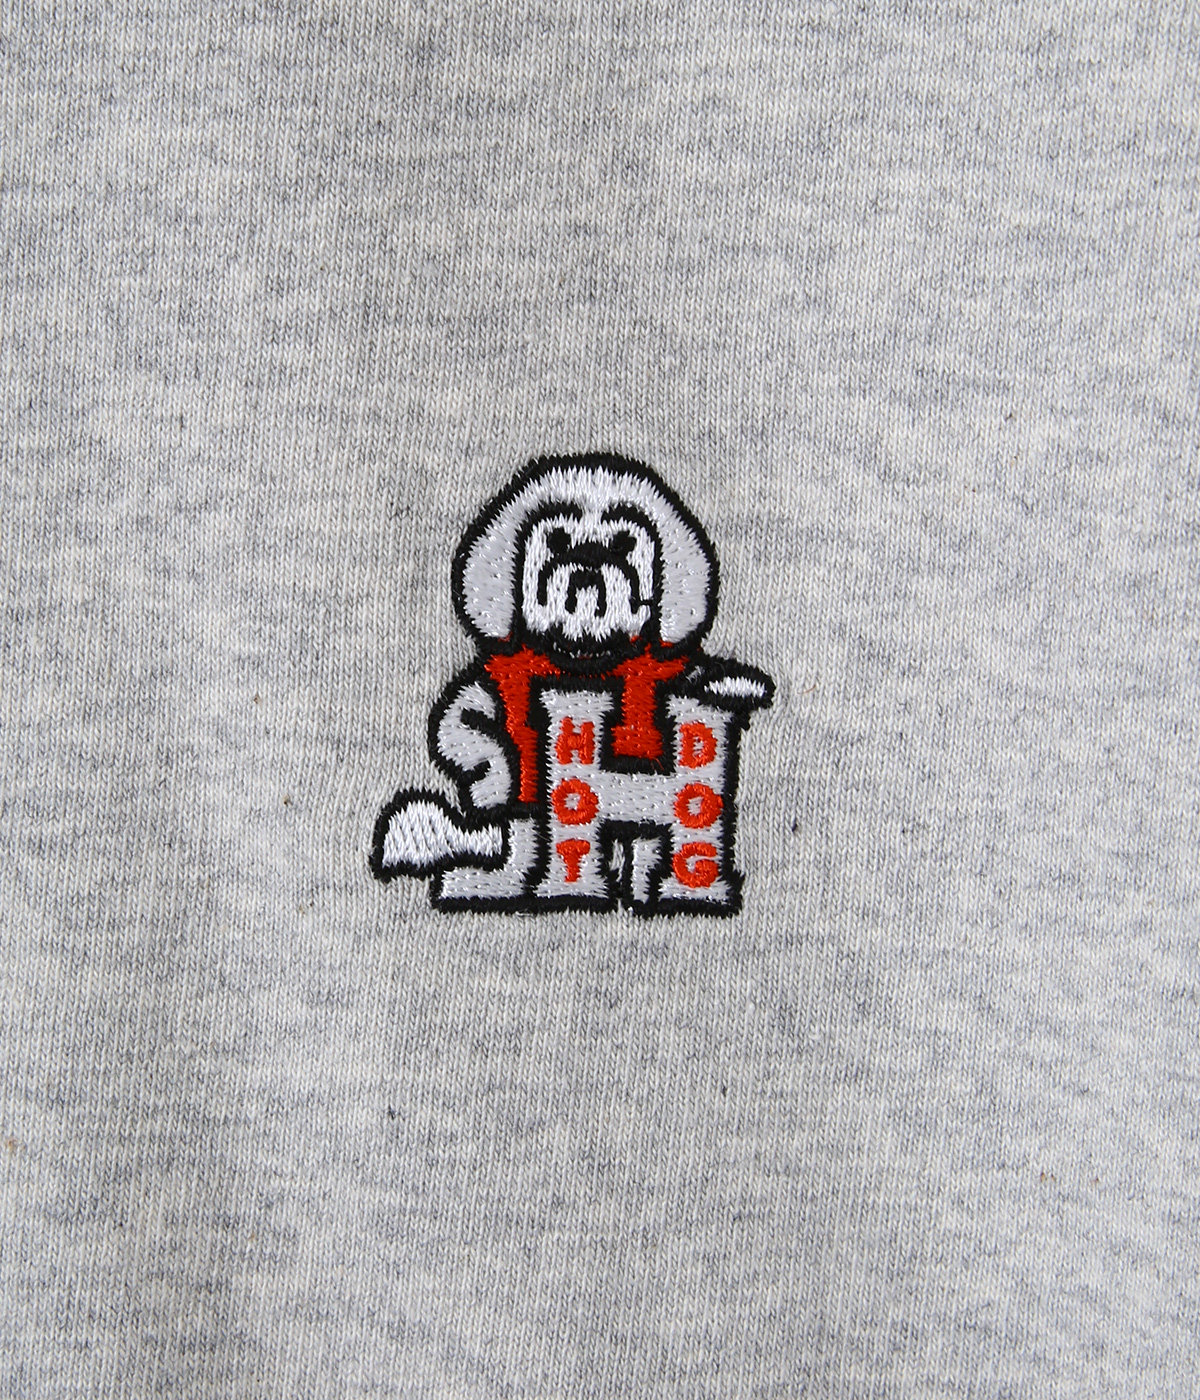 HOT DOG embroidery shirt